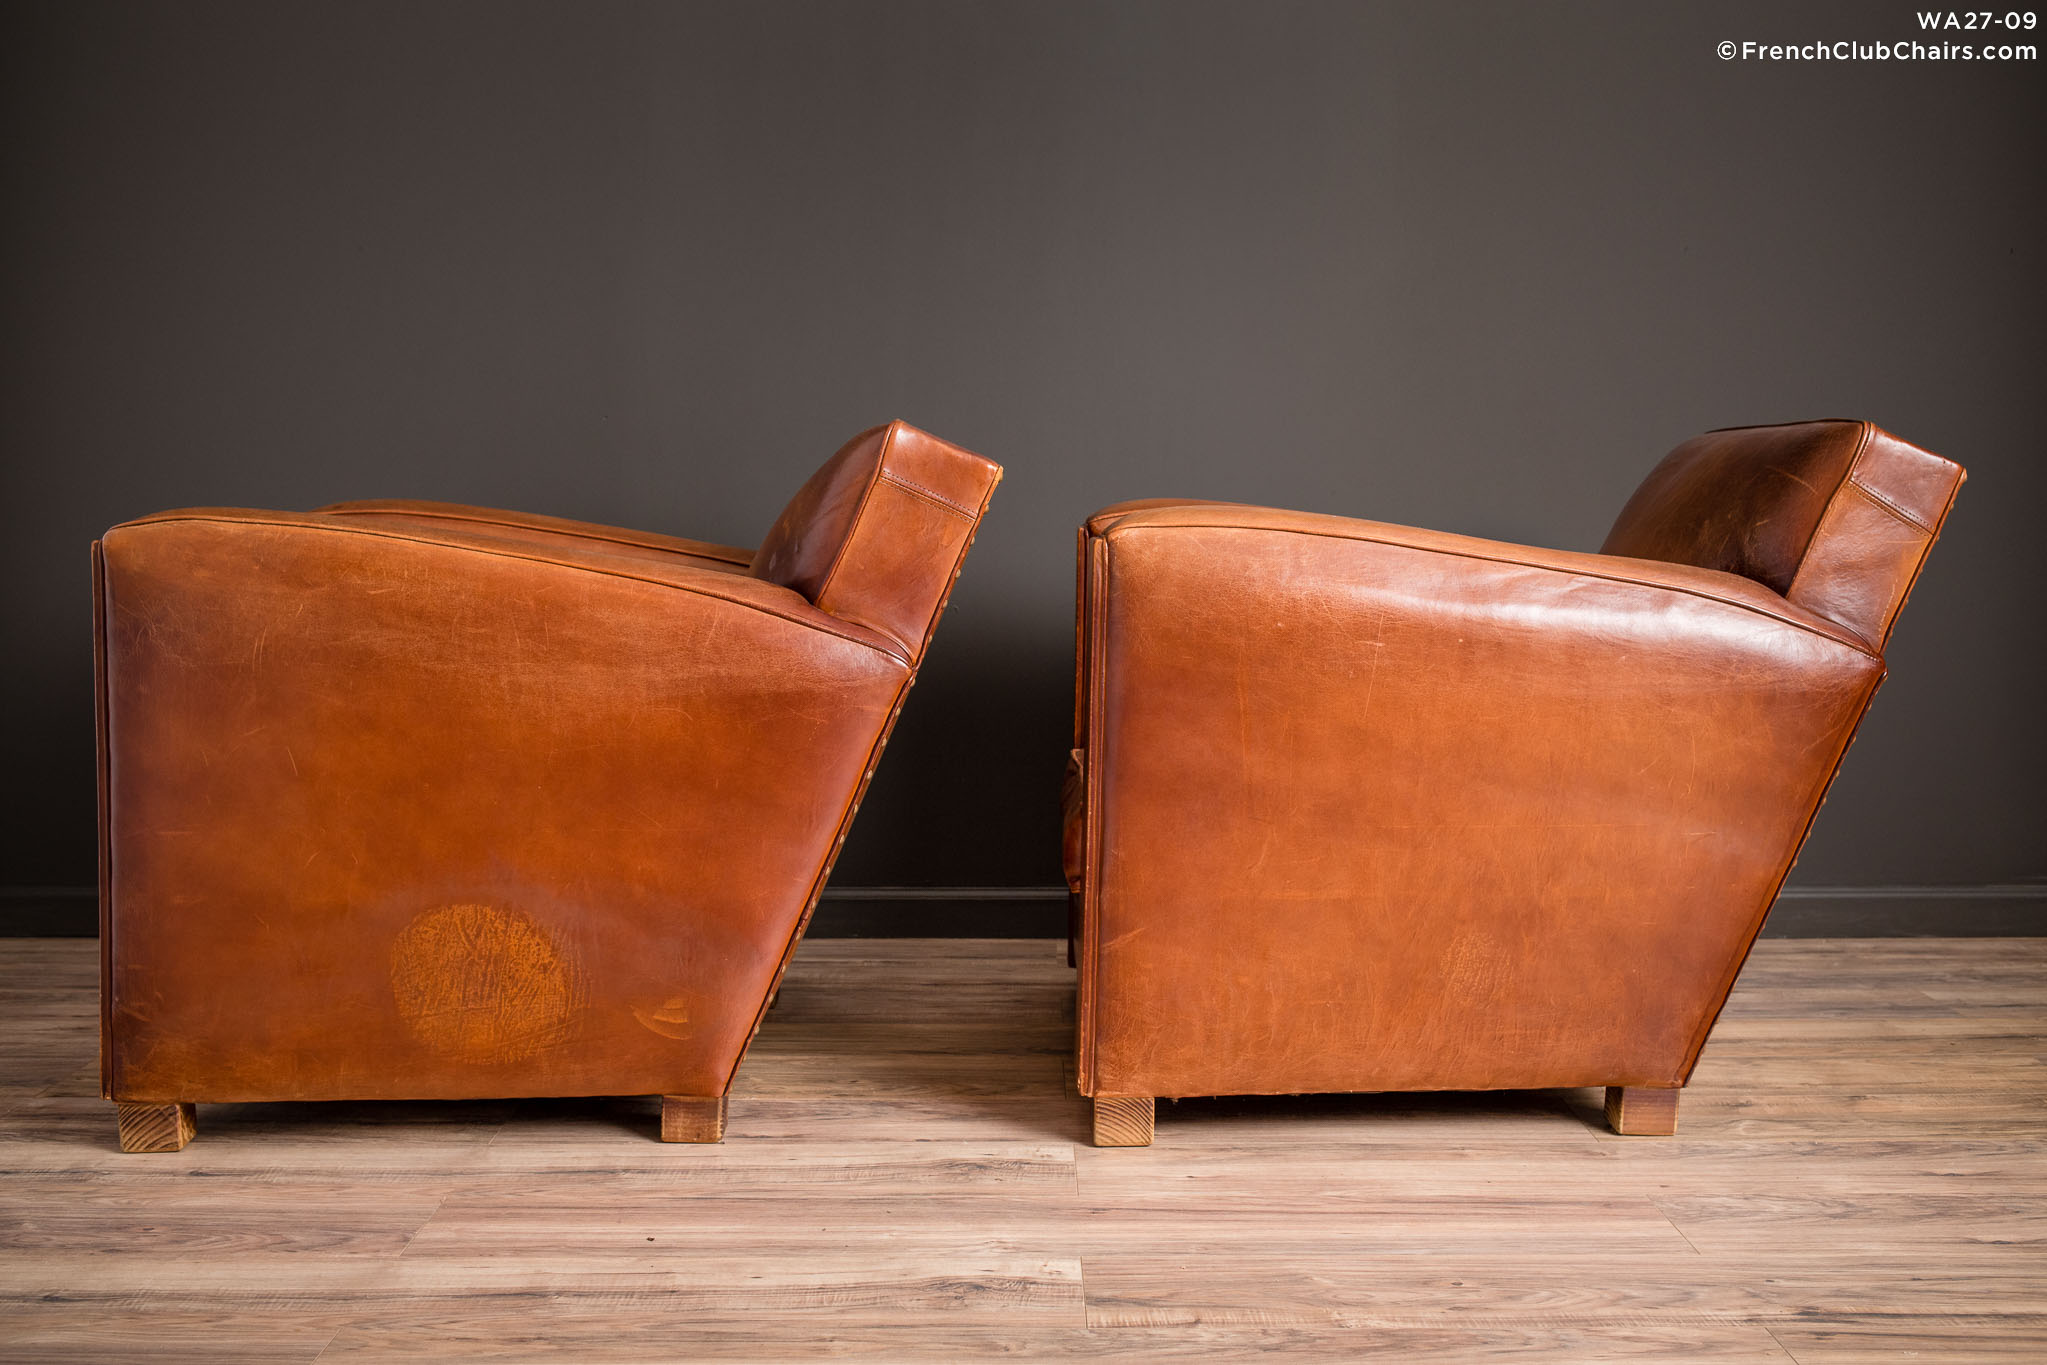 WA_27-09_Christophe_Paquebot_Pair_R_4LT-v01-williams-antiks-leather-french-club-chair-wa_fcccom